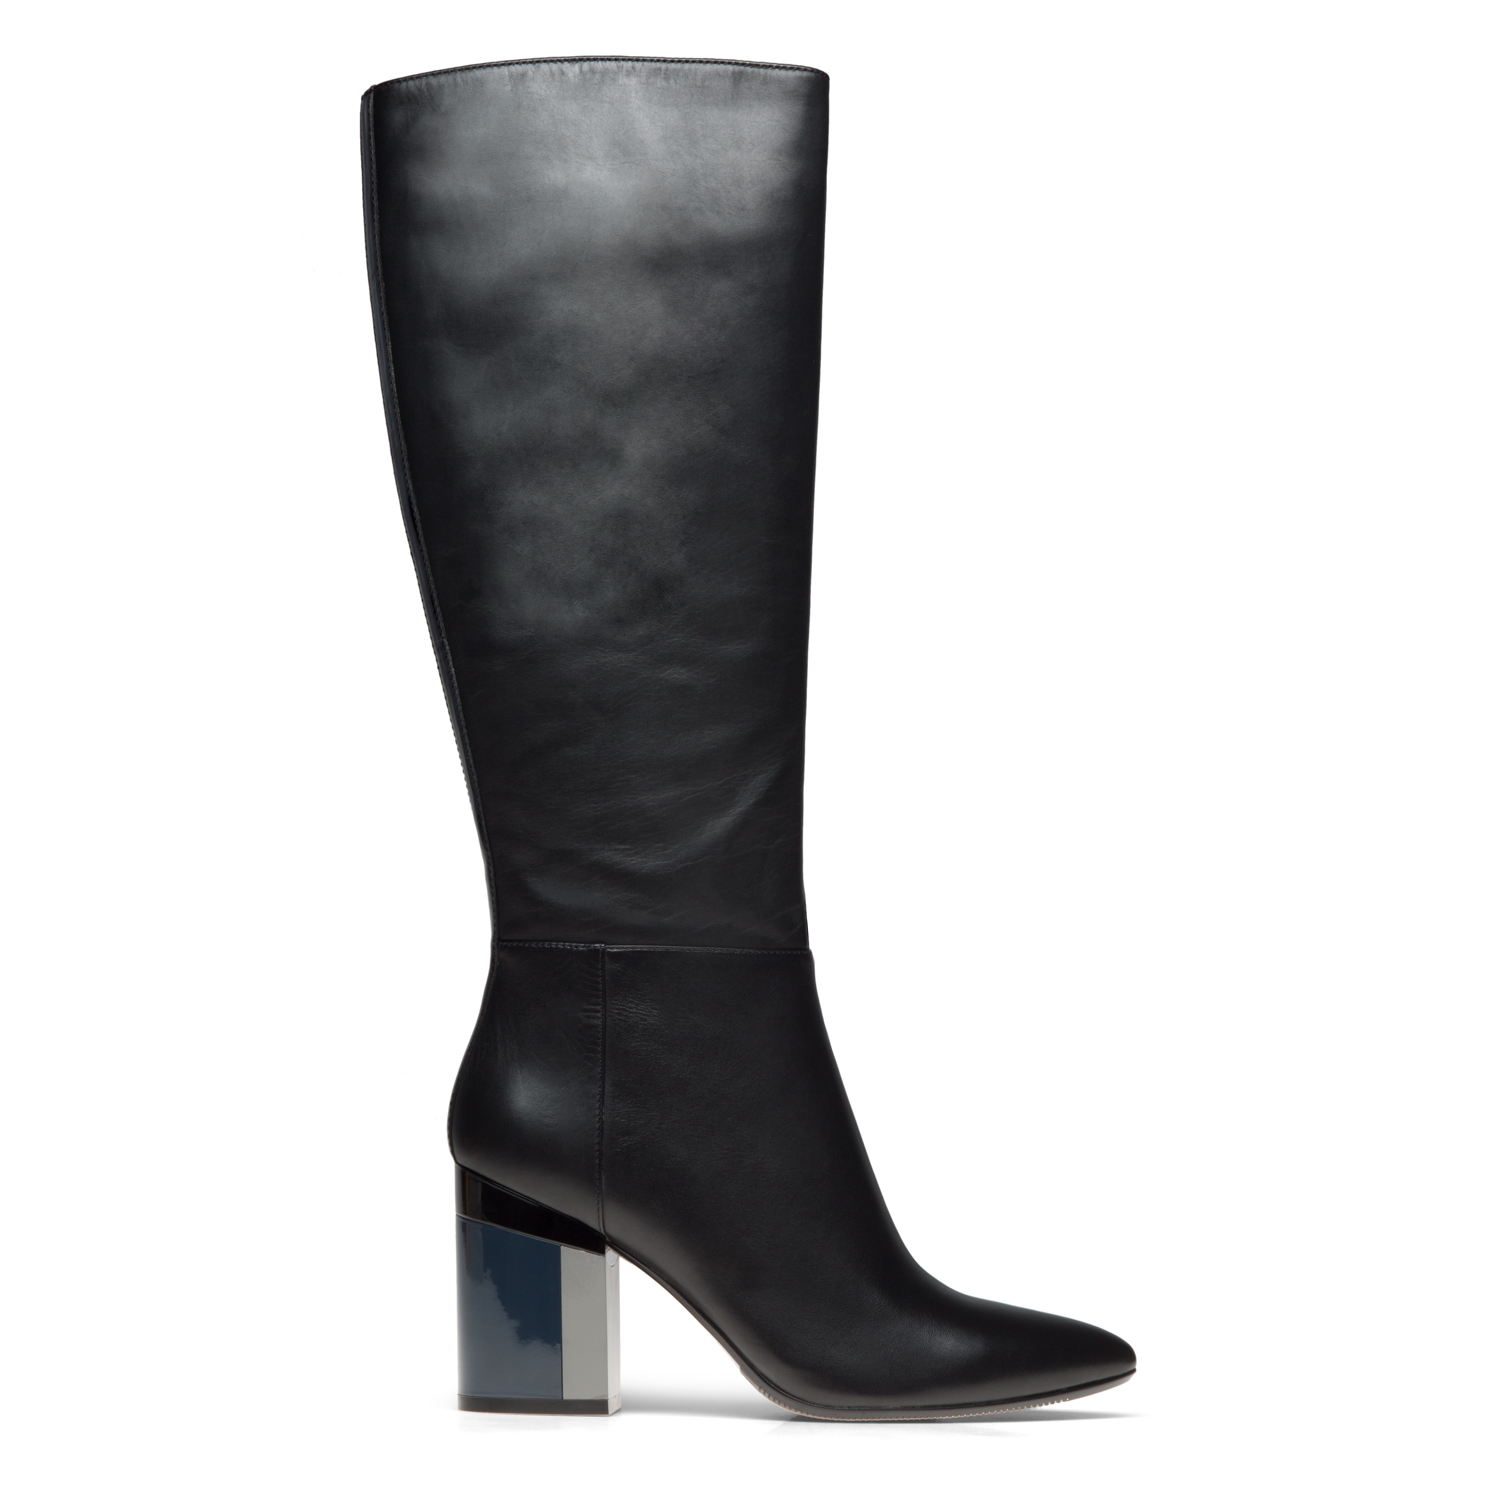 Women's cold weather high boots CARLO PAZOLINI FL-JAE3-1